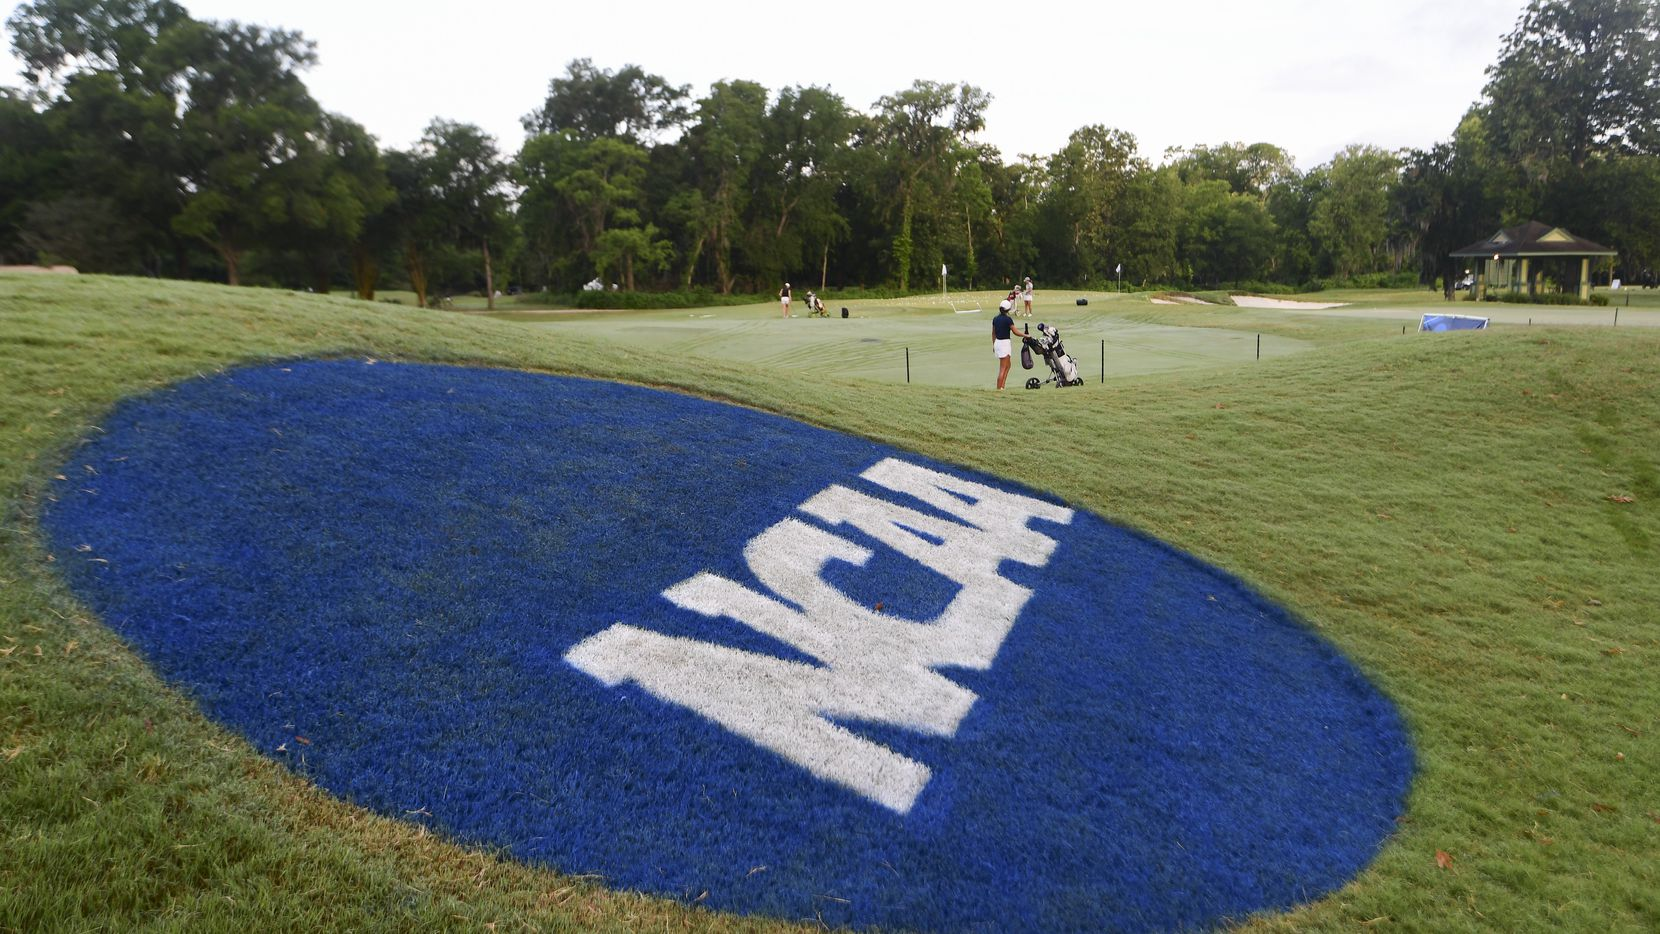 The Division III Women's Golf Championship held at the Bay Oaks Country Club on May 17, 2019 in Houston, Texas.